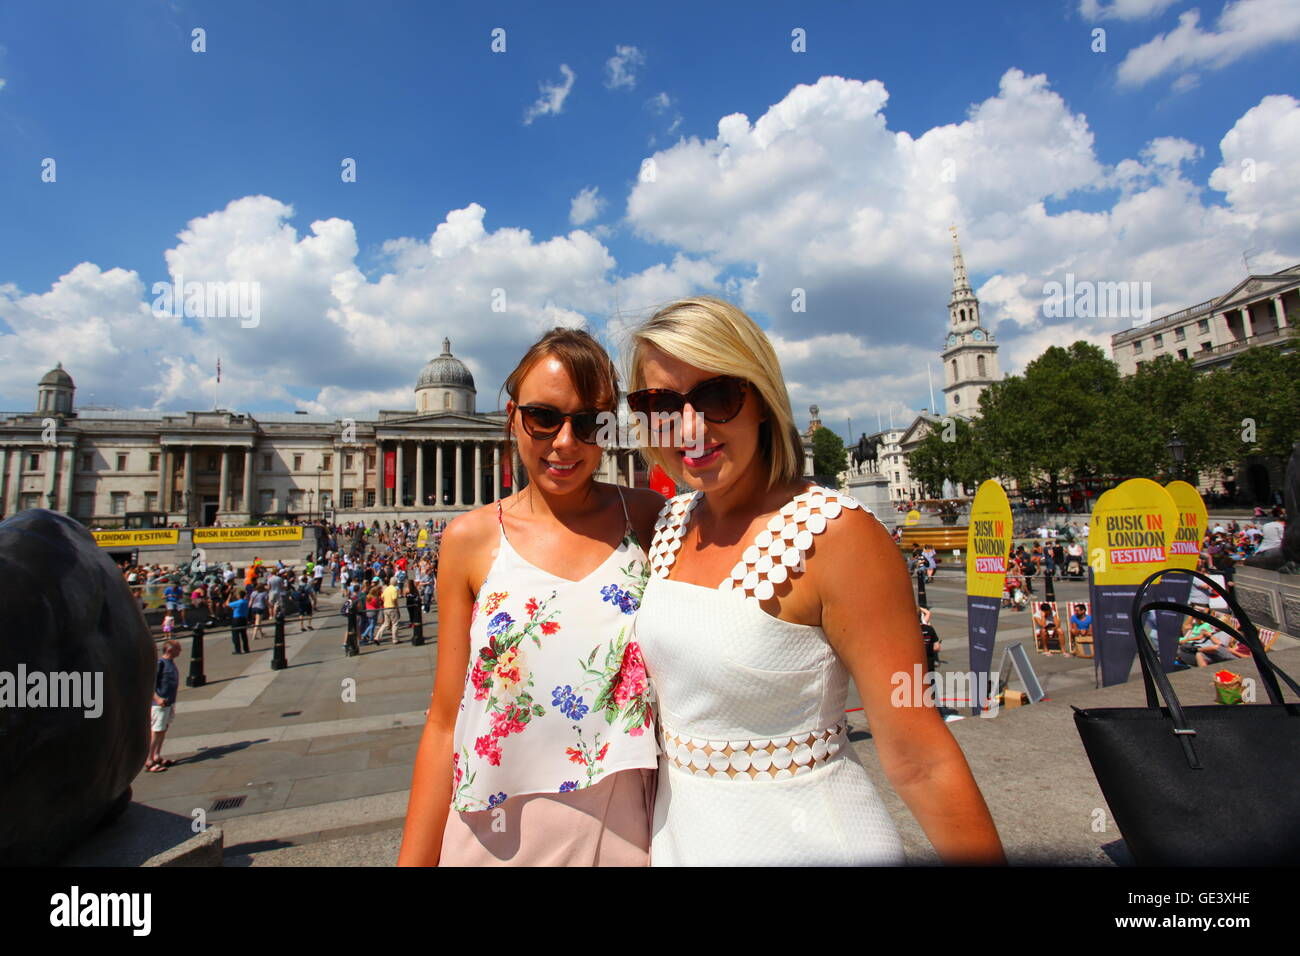 London, Great Britain. 23rd July, 2016. Two women enjoying the glorious hot weather that England is having at the - Stock Image